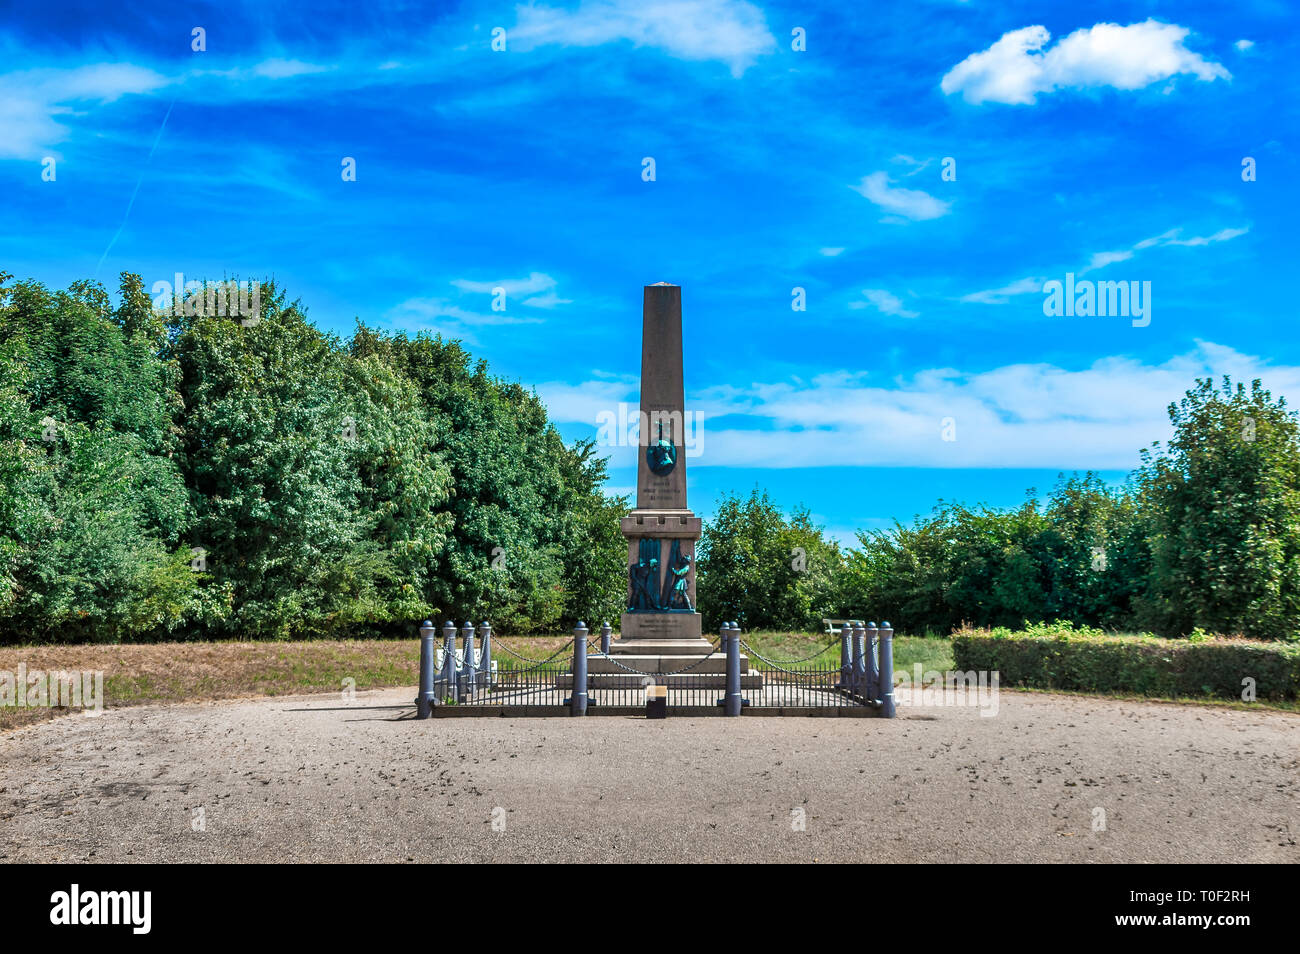 Commemorative column dedicated to Colonel Niels Christian Lunding, a hero of the Battle of Fredericia 1849 - Fredericia, Denmark. - Stock Image